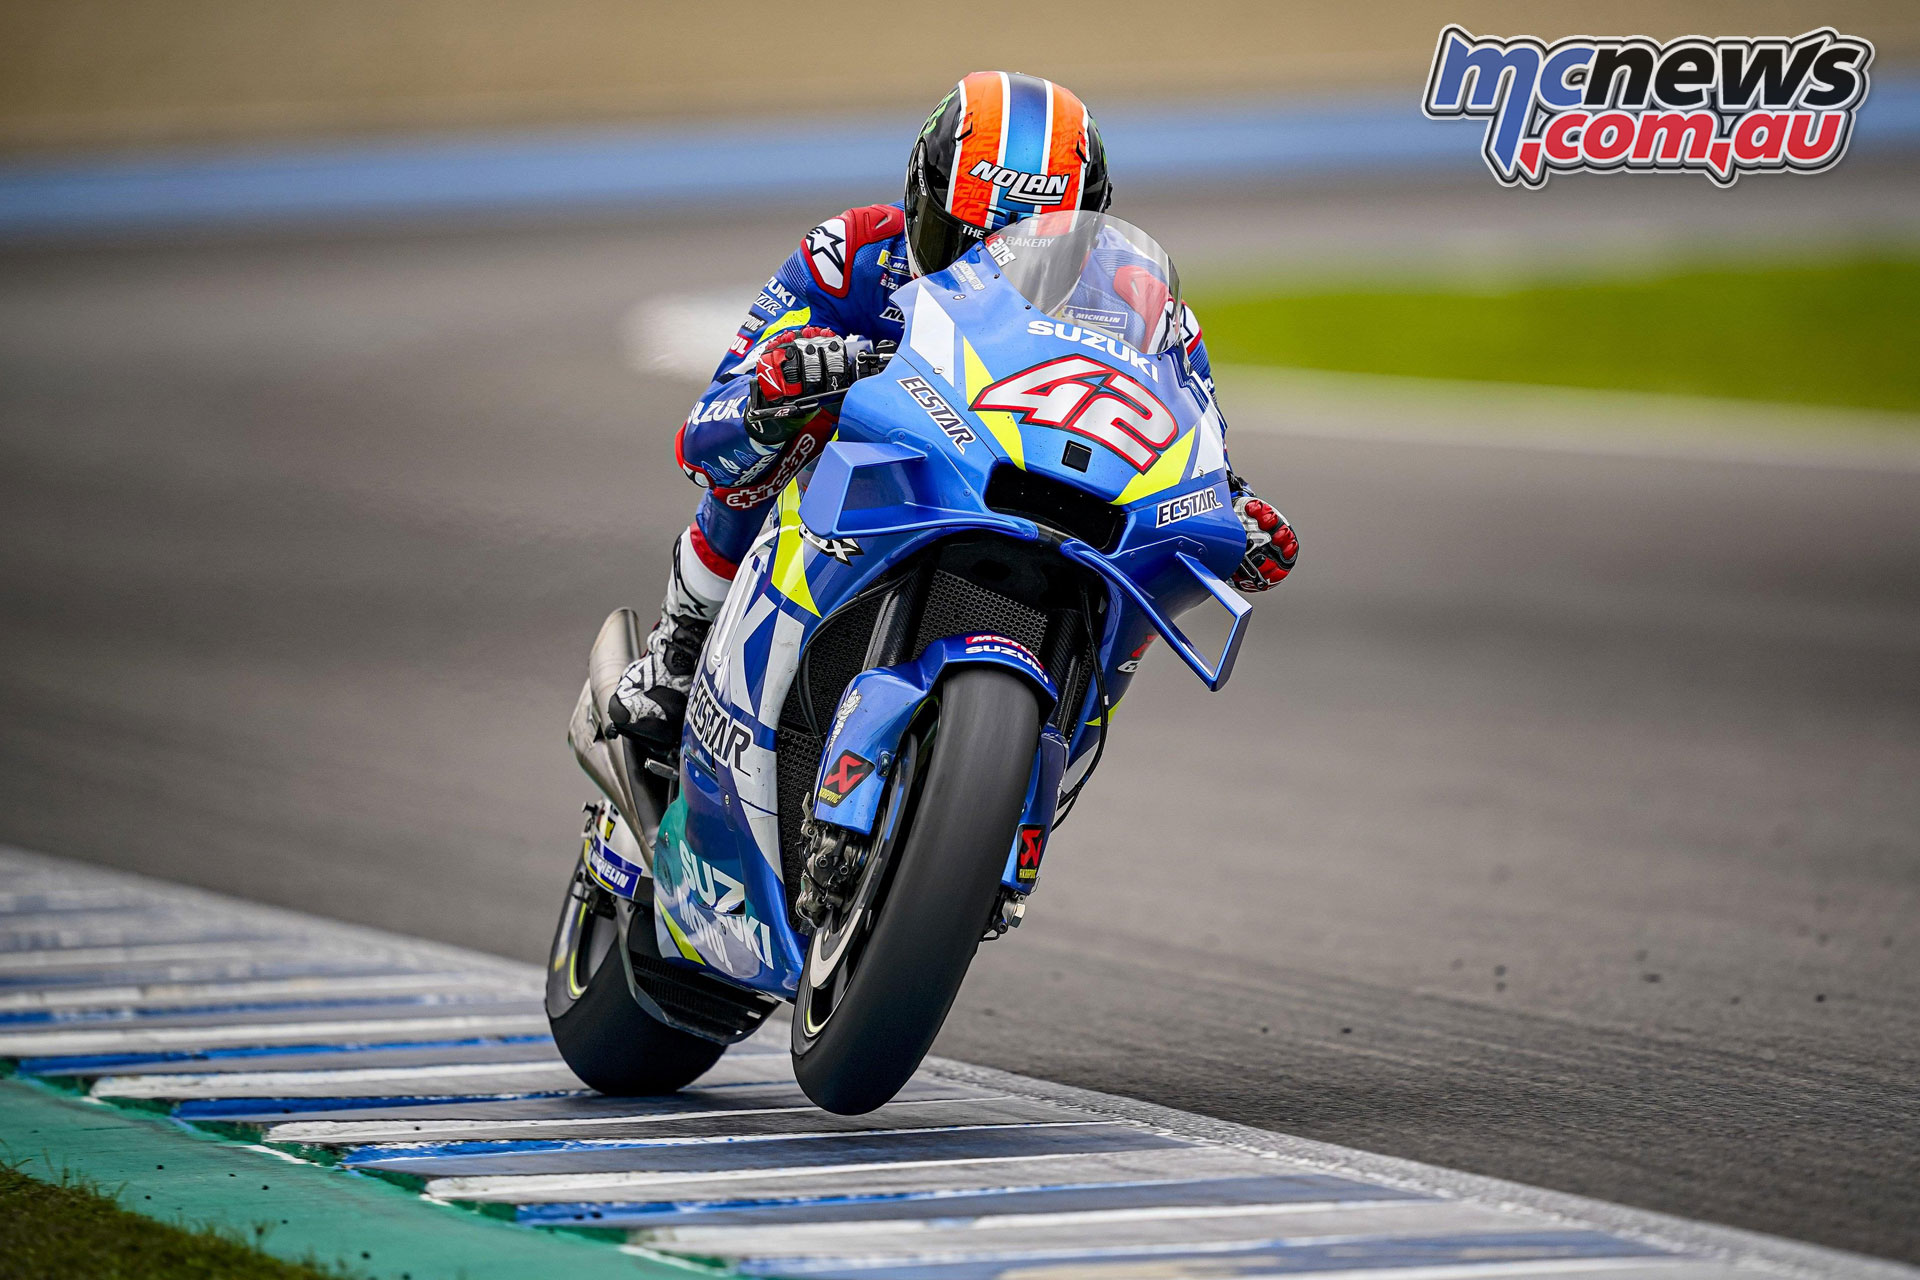 MotoGP Test Jerez D Nov Alex Rins